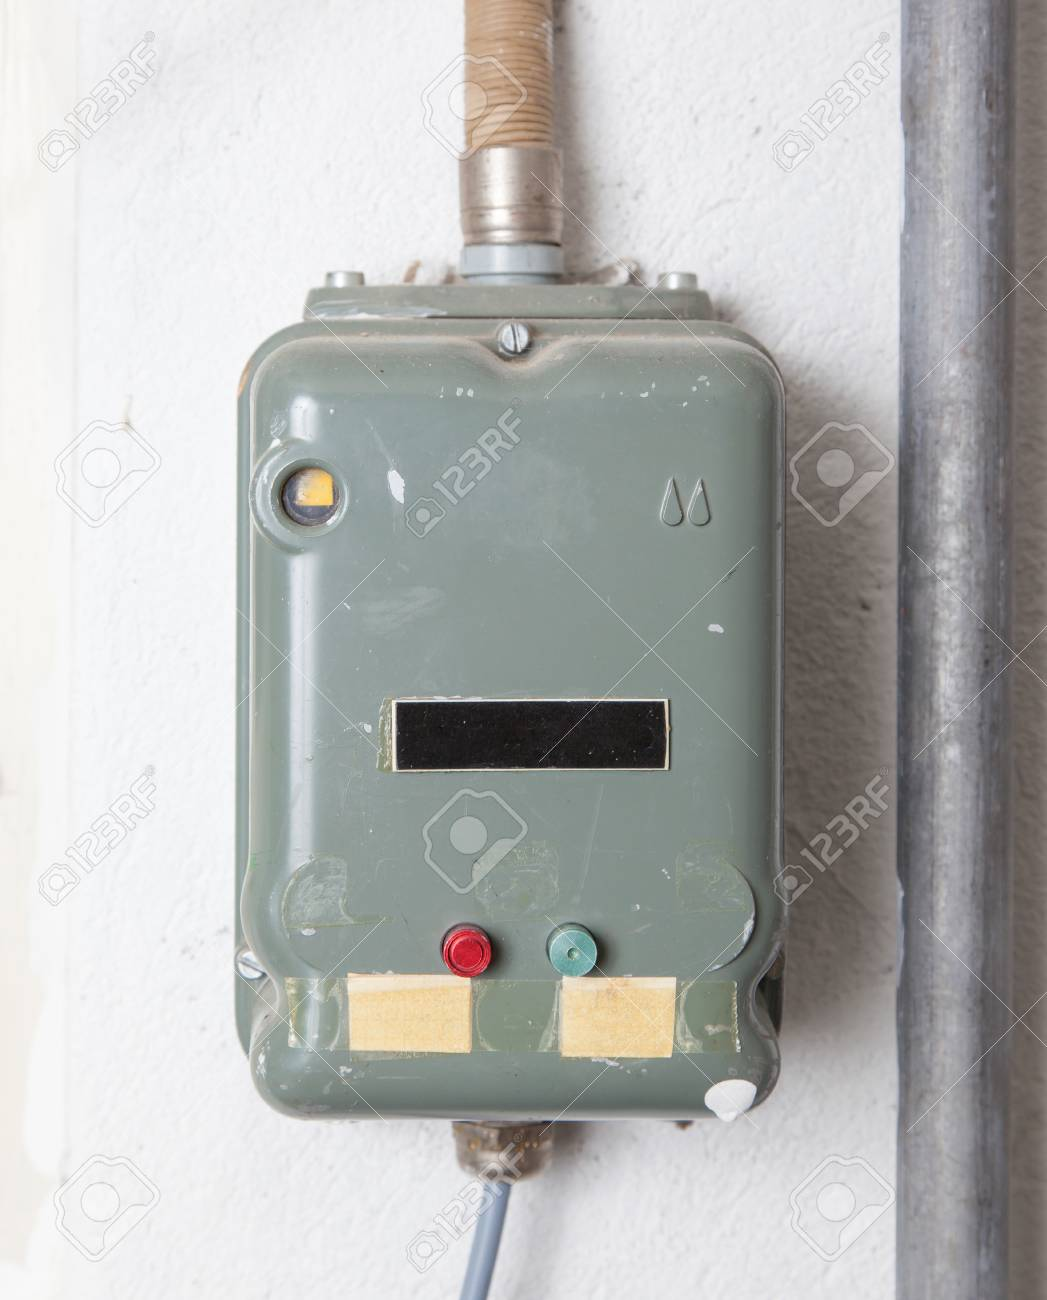 hight resolution of old fusebox from the 80s house in switzerland stock photo 44314148